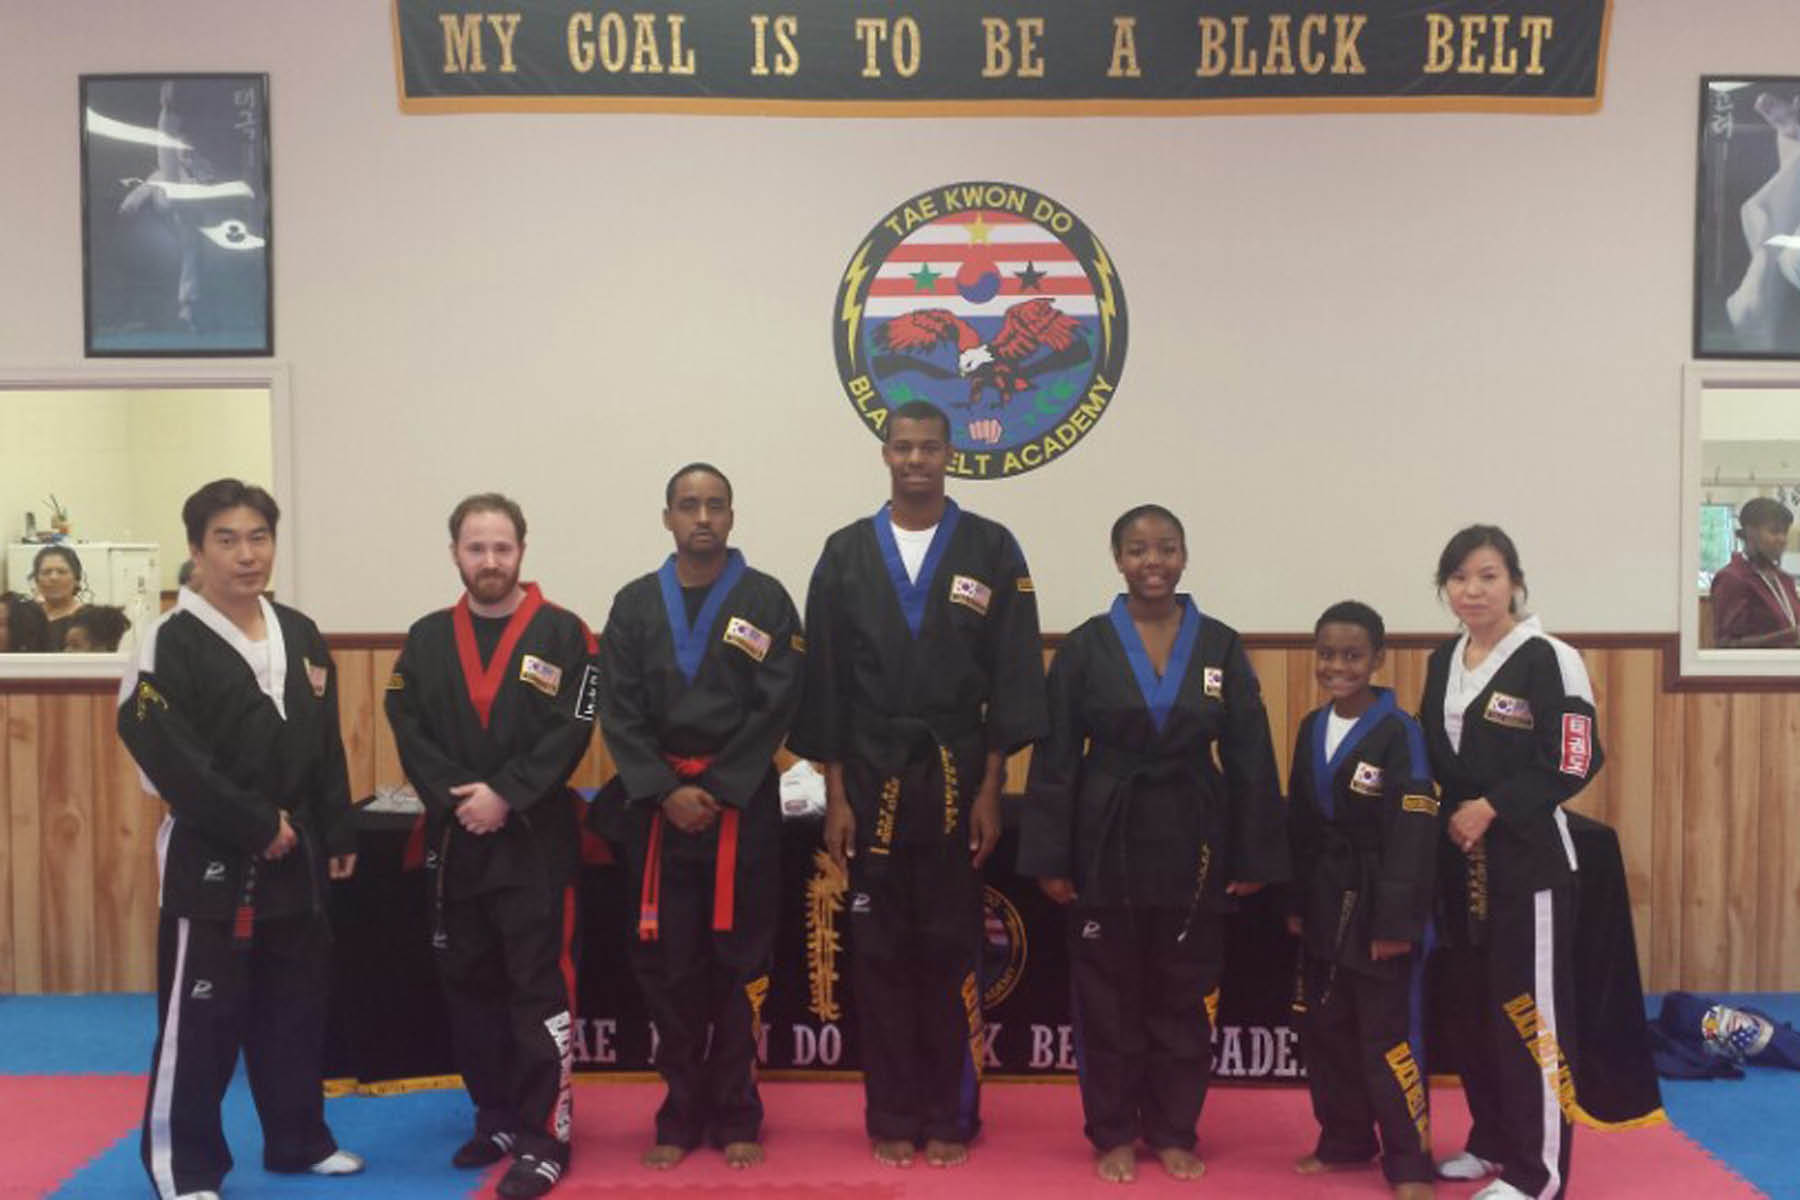 Weapon classes, self defense classes, martial arts in Southern Maryland